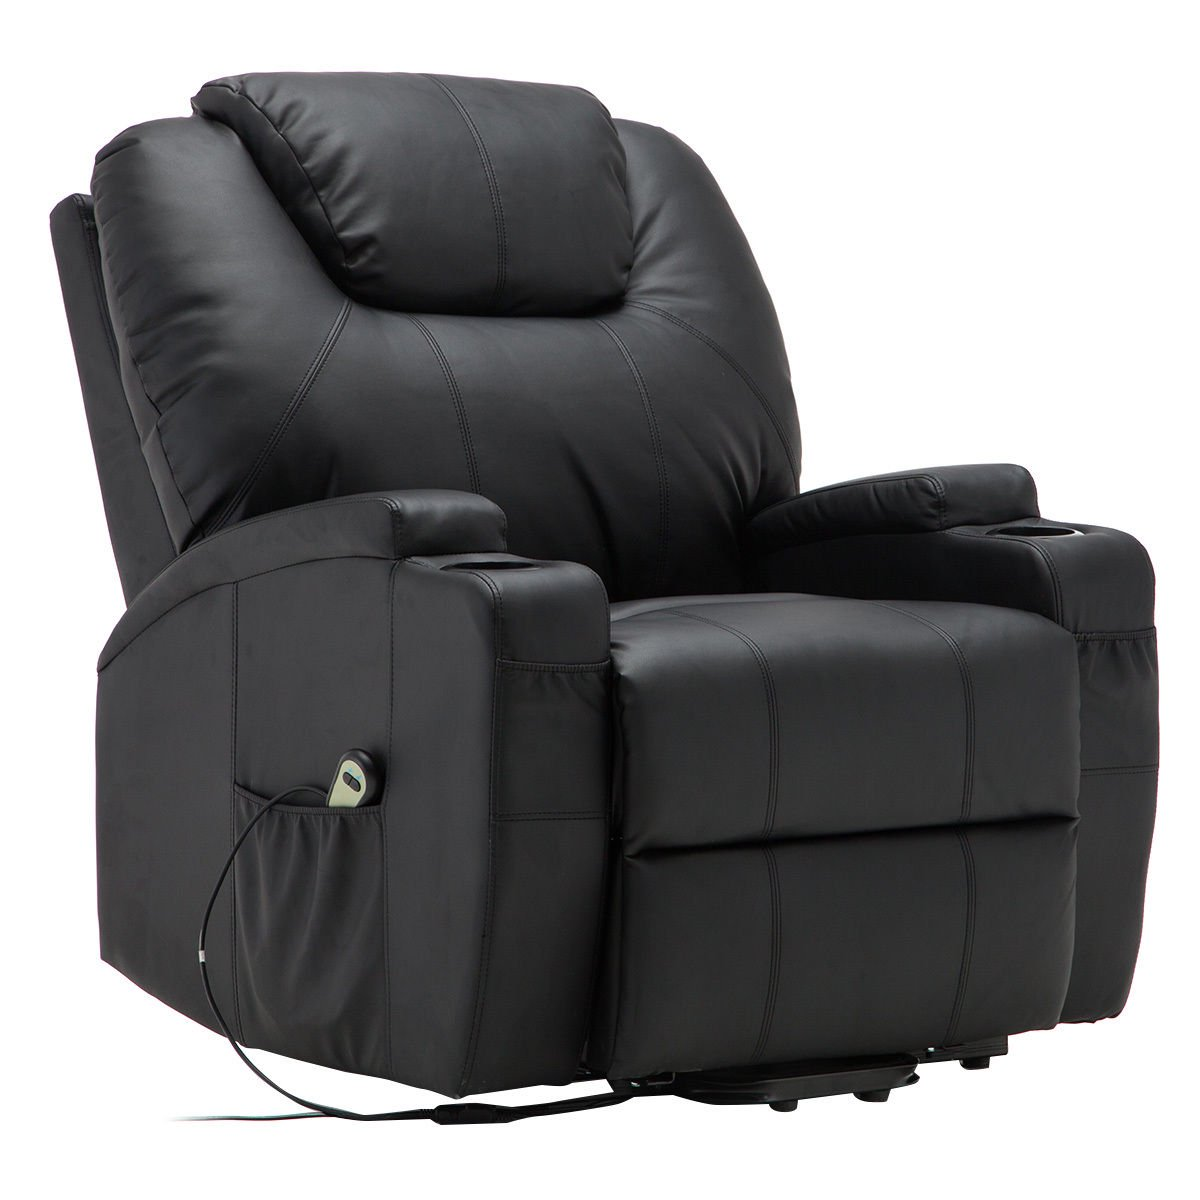 Costway Electric Lift Power Recliner Chair Heated Massage Sofa Lounge w/ Remote Control  sc 1 st  Walmart : recliner chairs electric - islam-shia.org